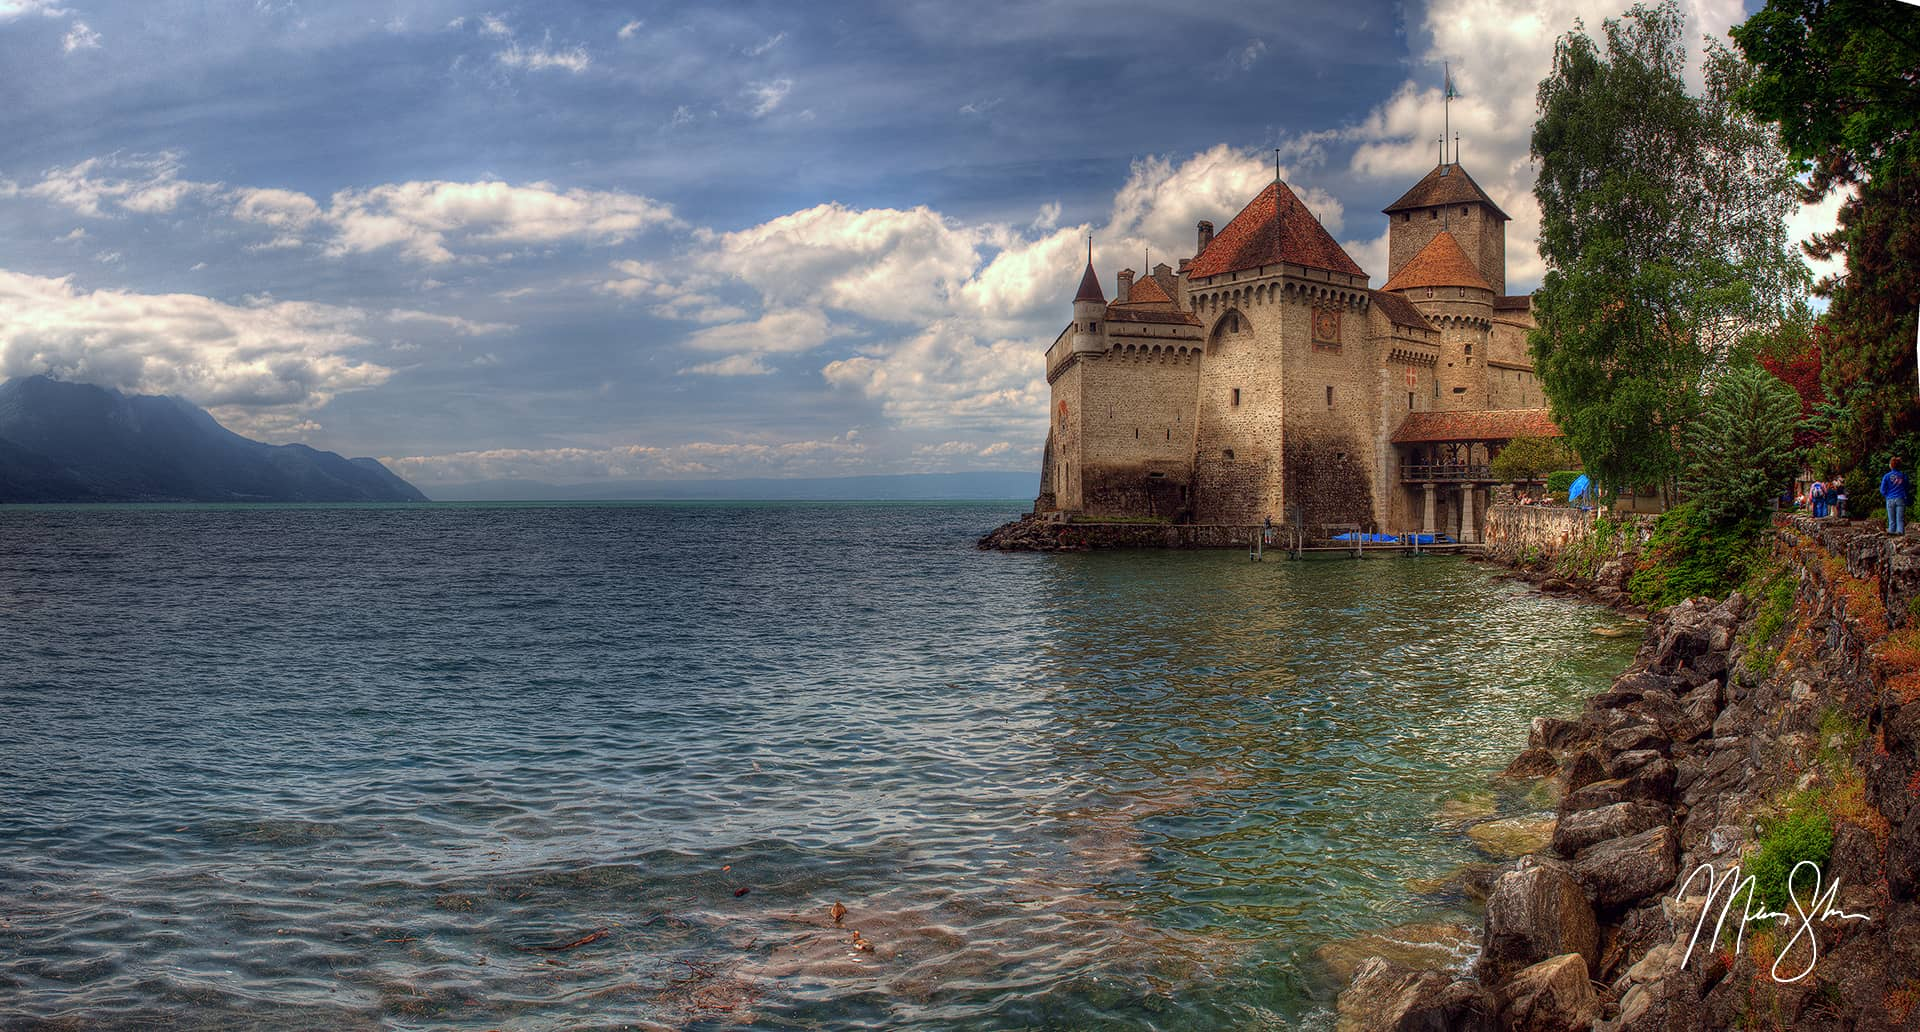 Open edition fine art print of Storybook Chillon from Mickey Shannon Photography. Location: Chateau de Chillon, Montreux-Vevey, Switzerland